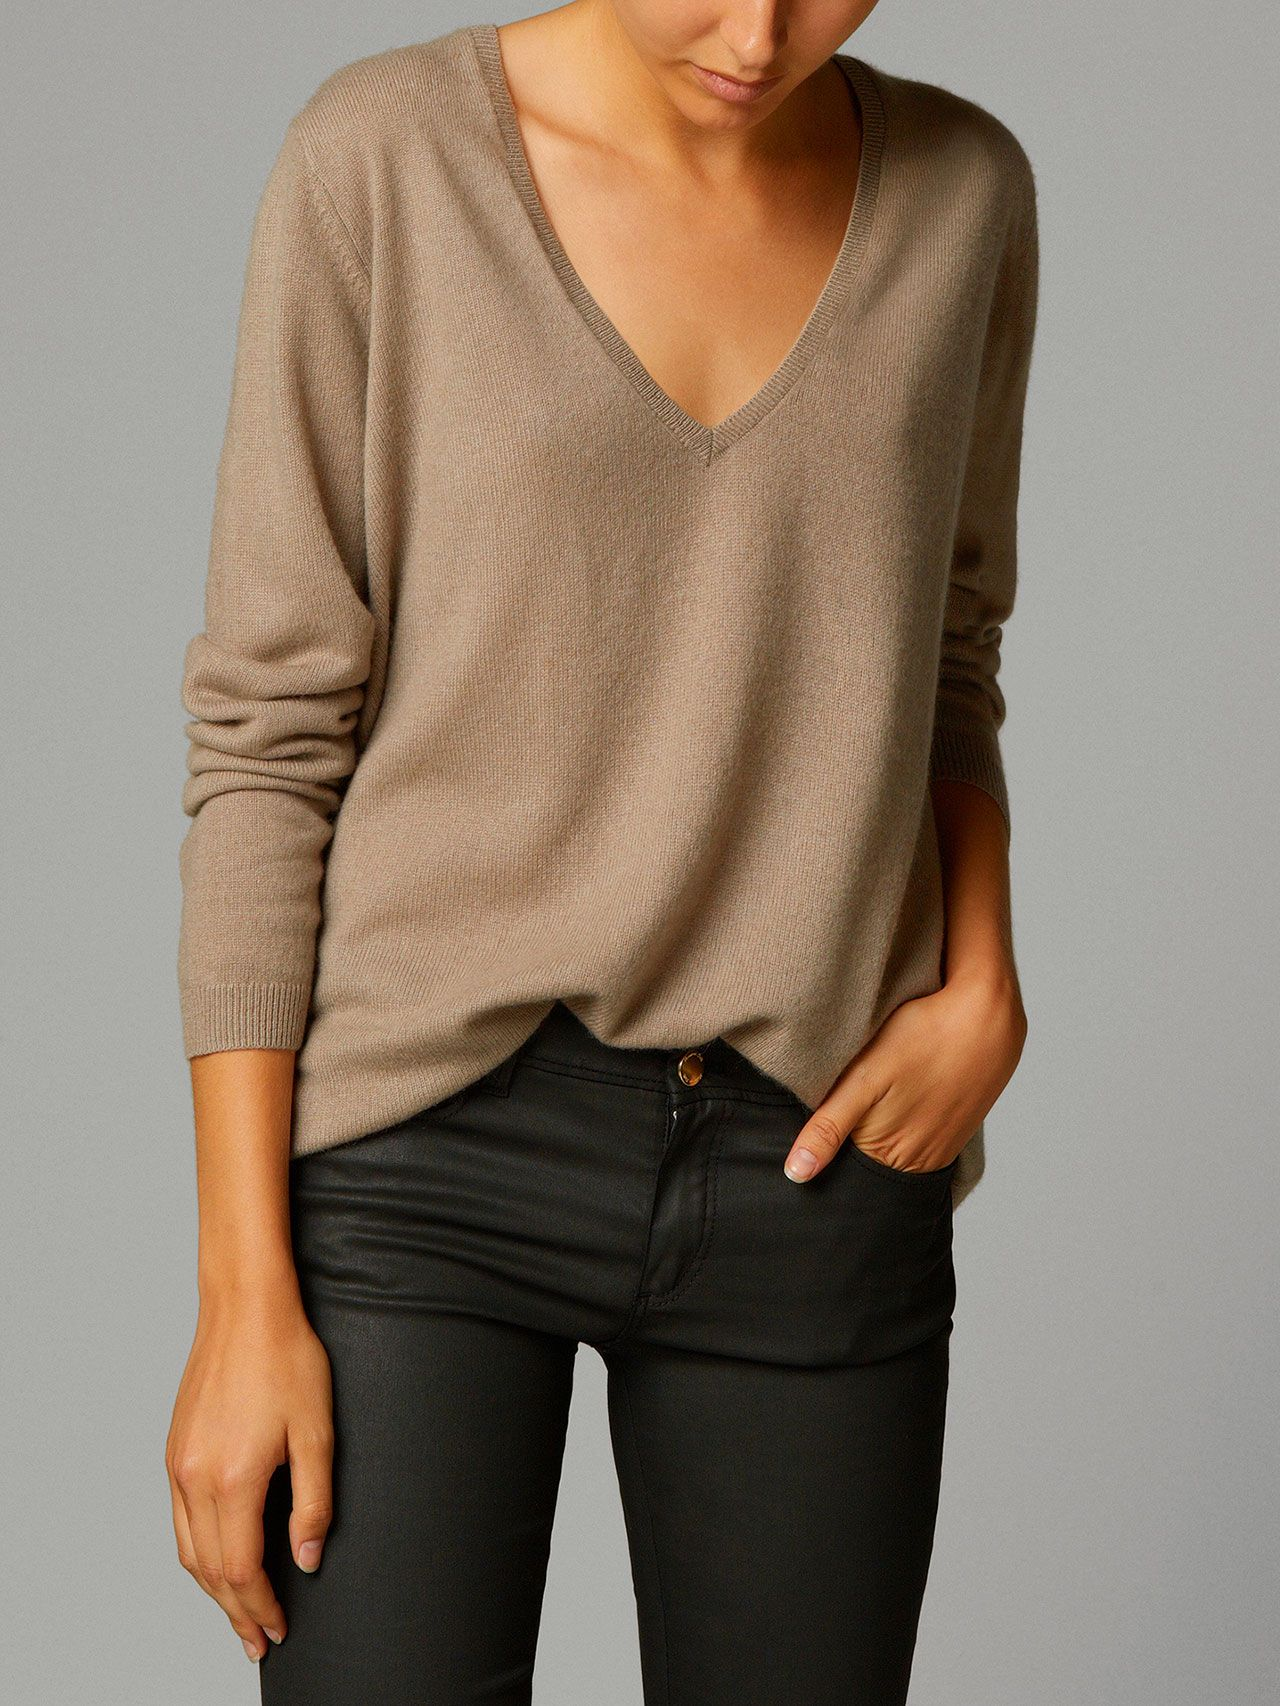 Great Fit Not Into The Neutral Of The Sweater For Me